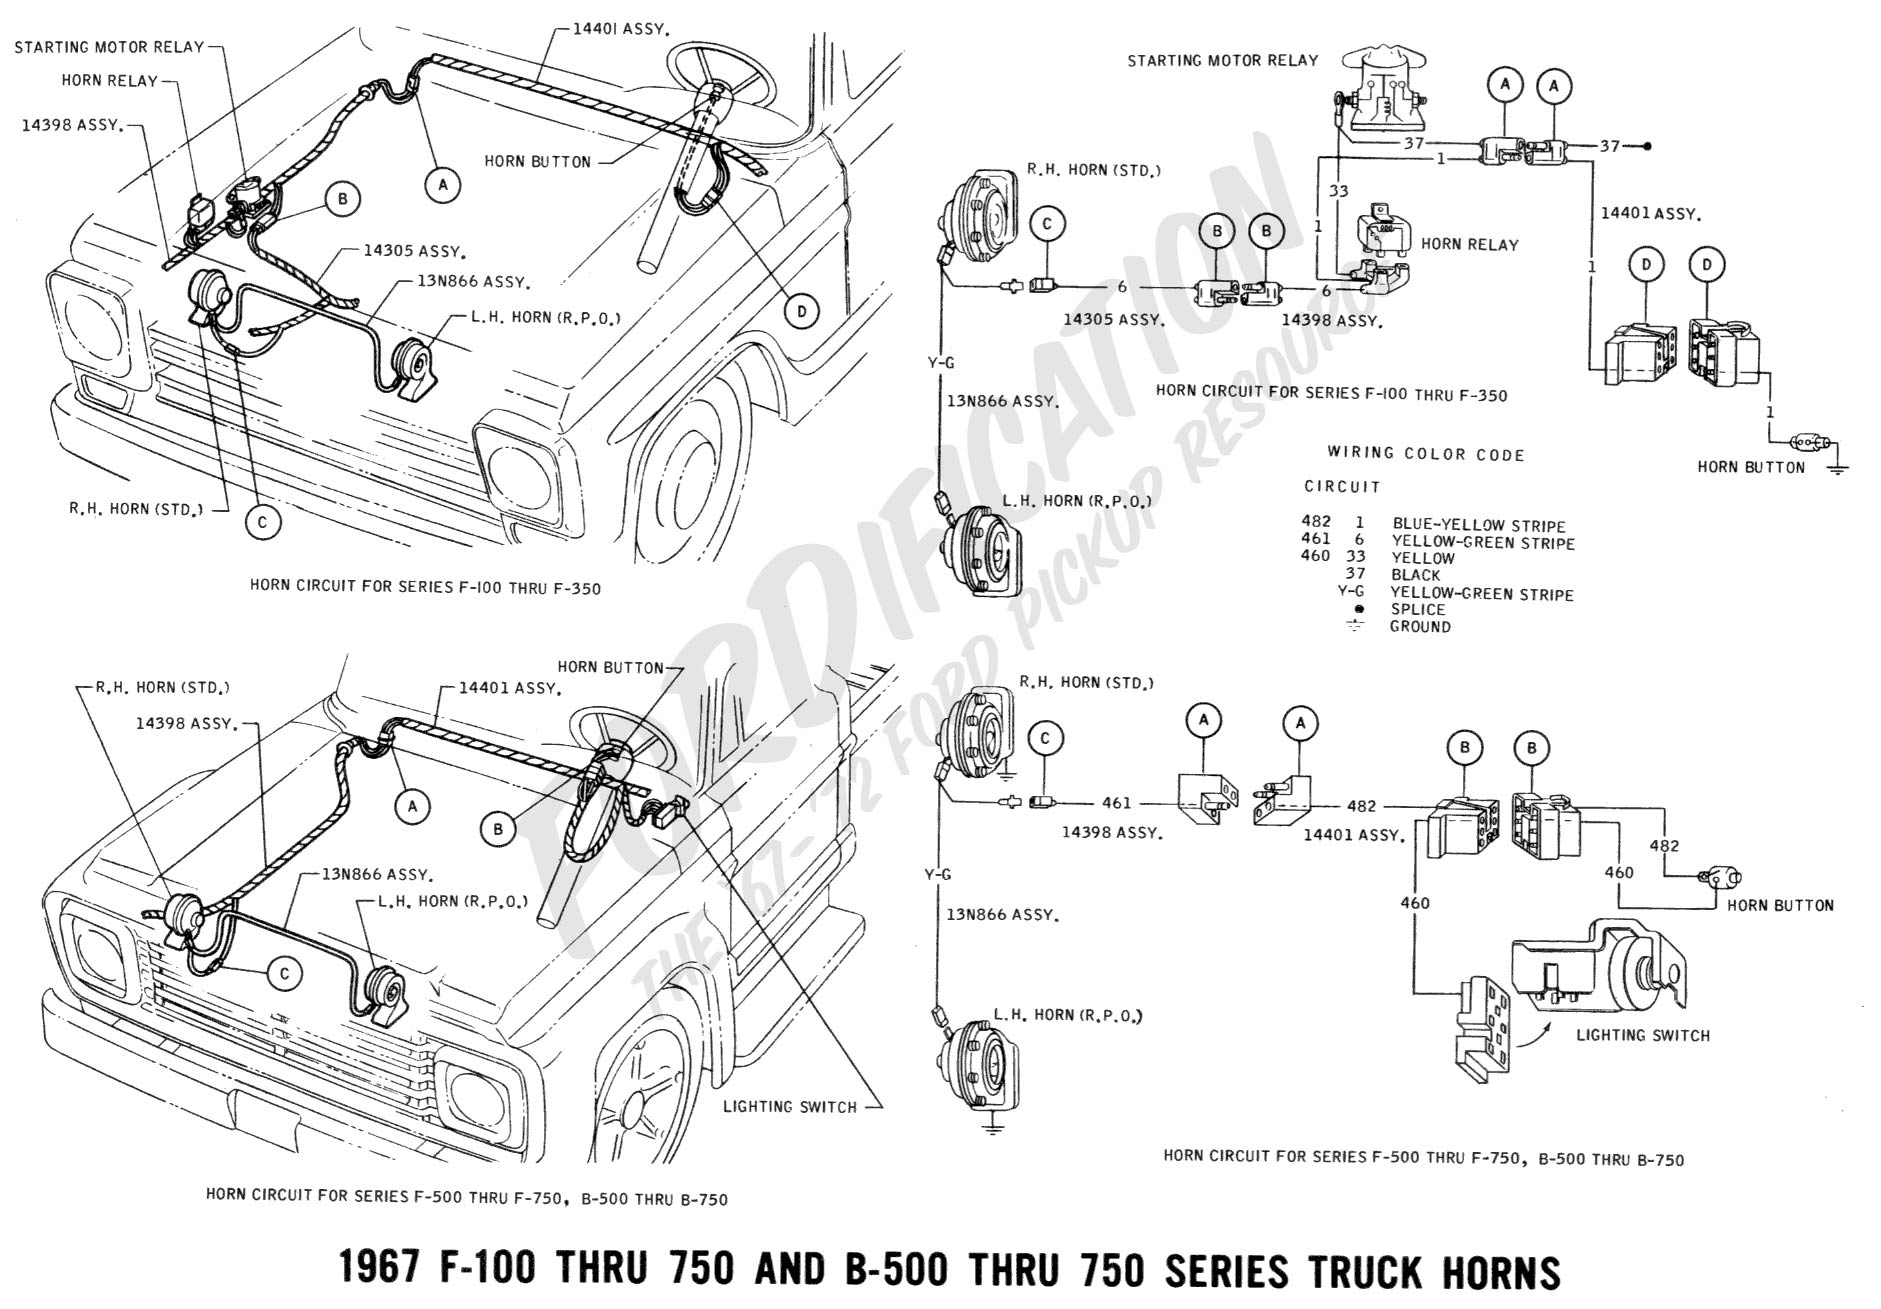 1973 F100 Turn Signal Wiring Diagram on 1961 chevy c10 wiring diagram